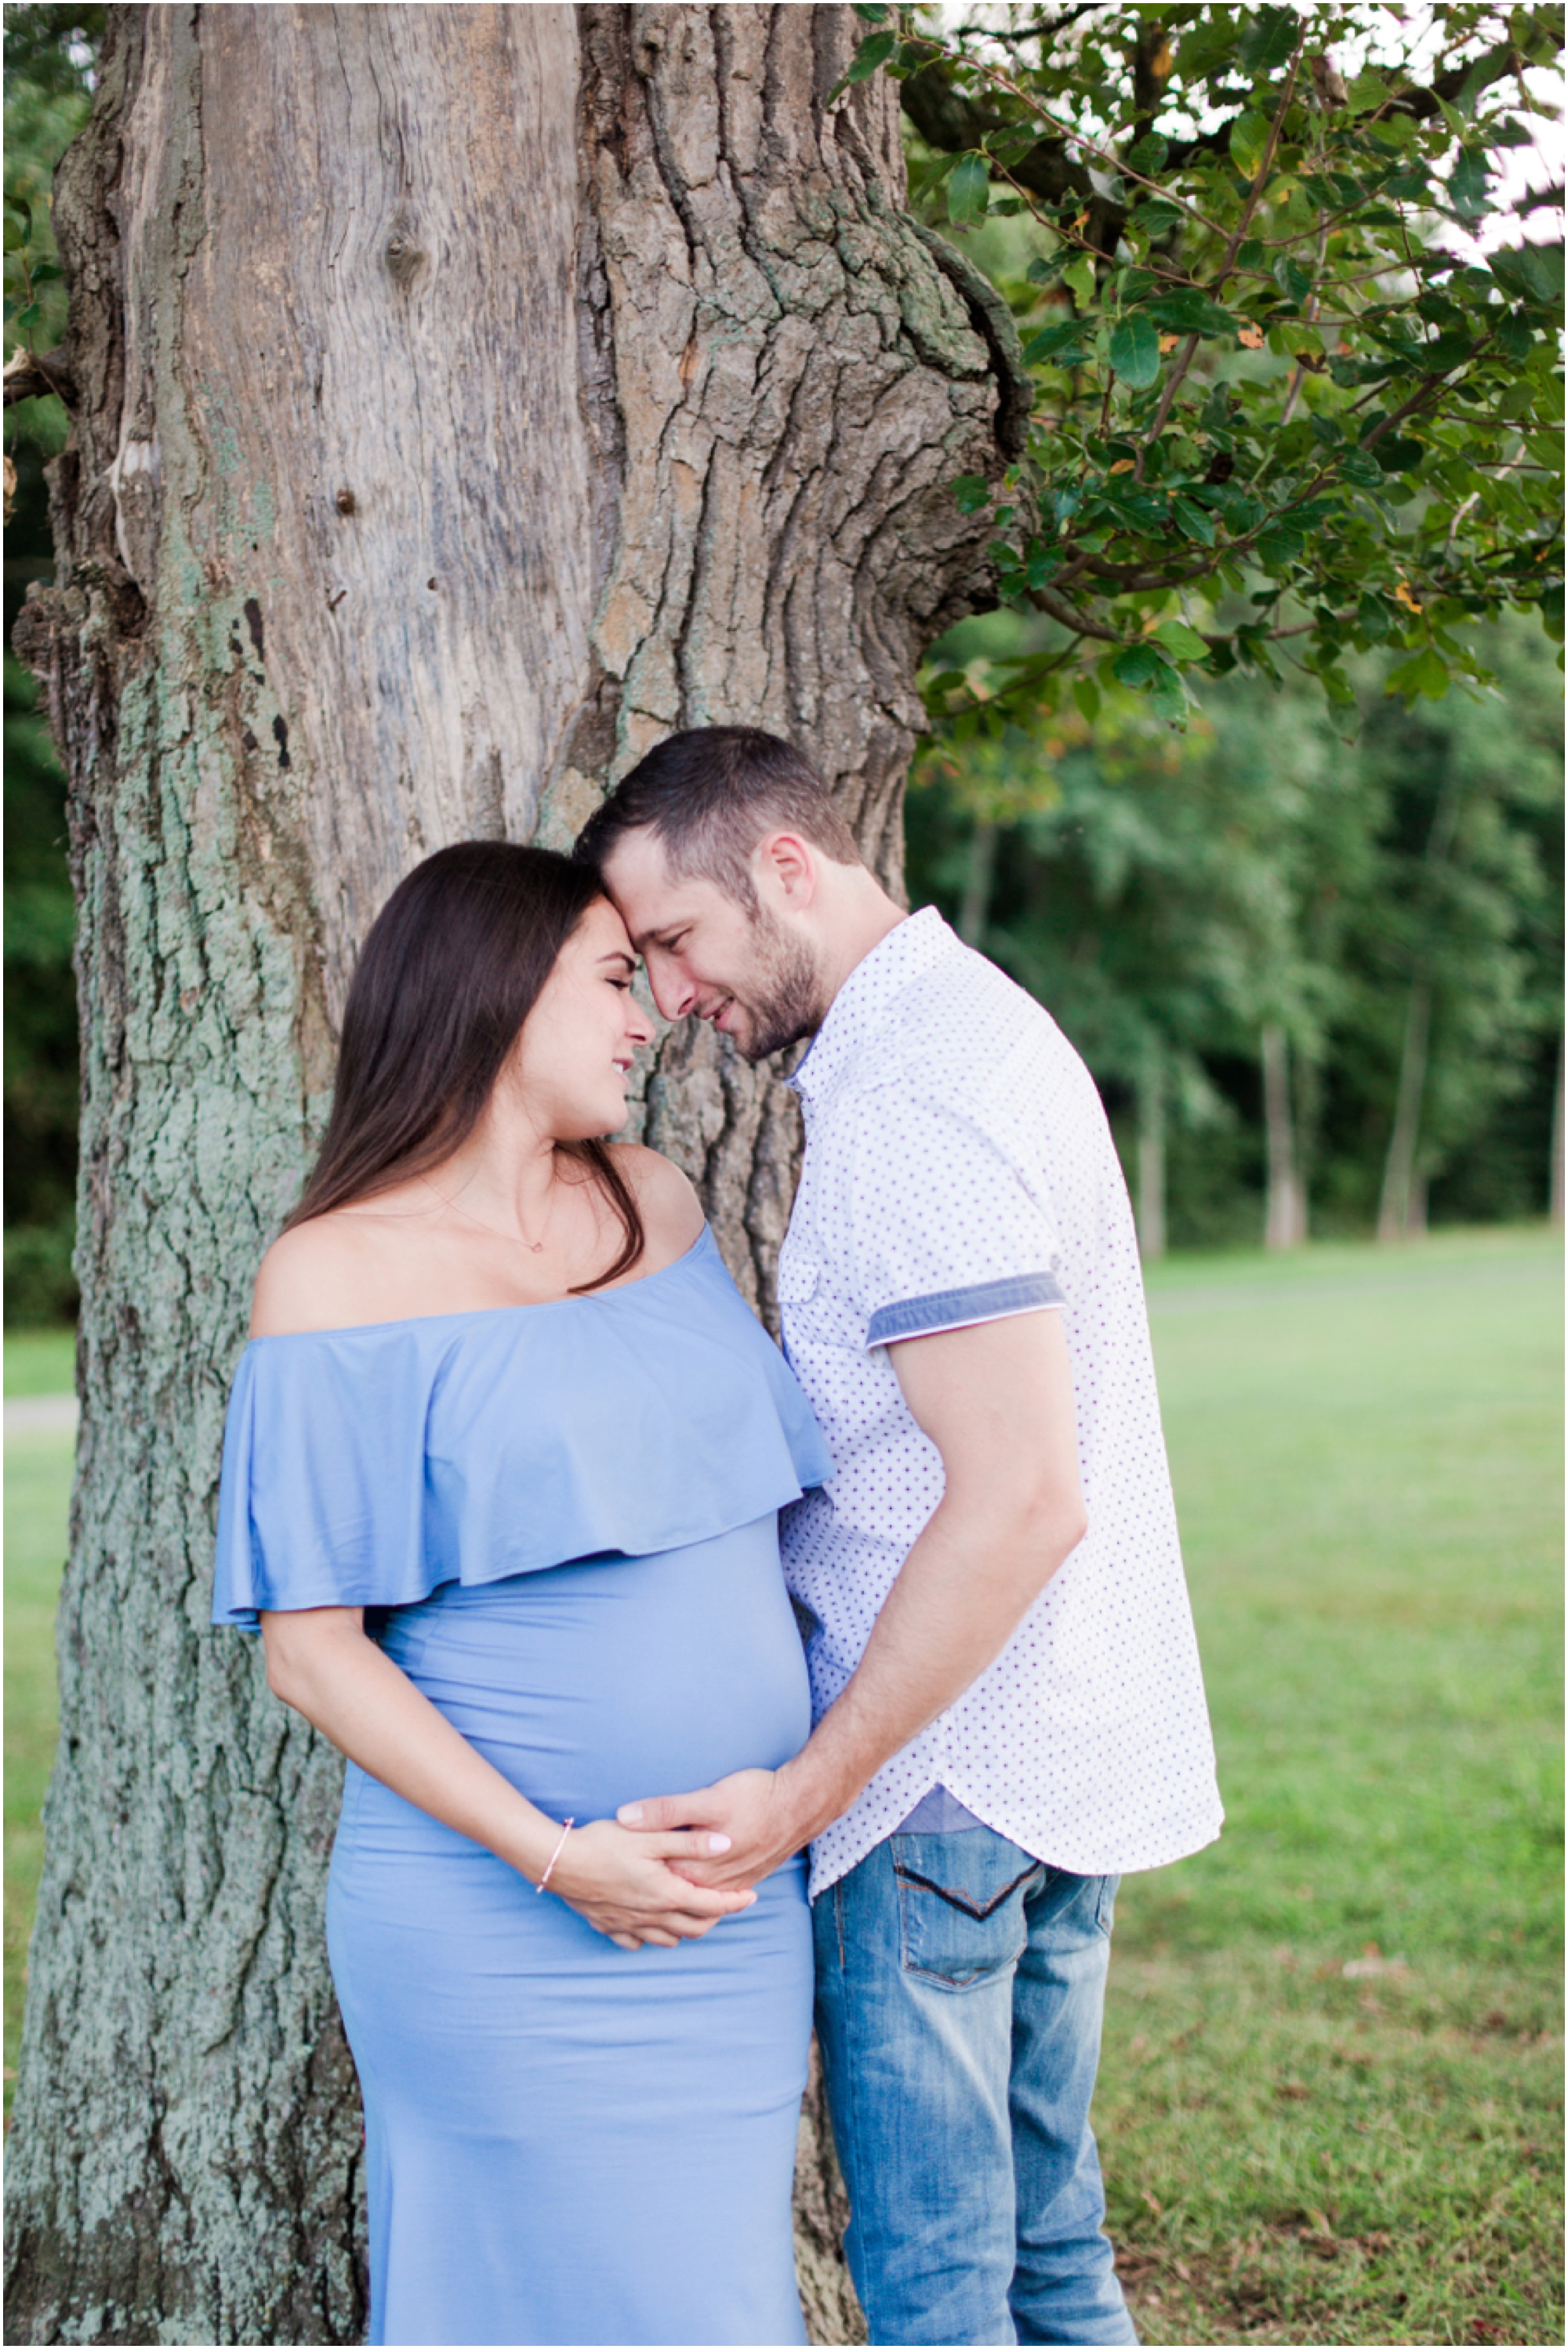 Natural light maternity portraits by Briana Calderon Photography based in the Greater Seattle & Tacoma, WA_0767.jpg